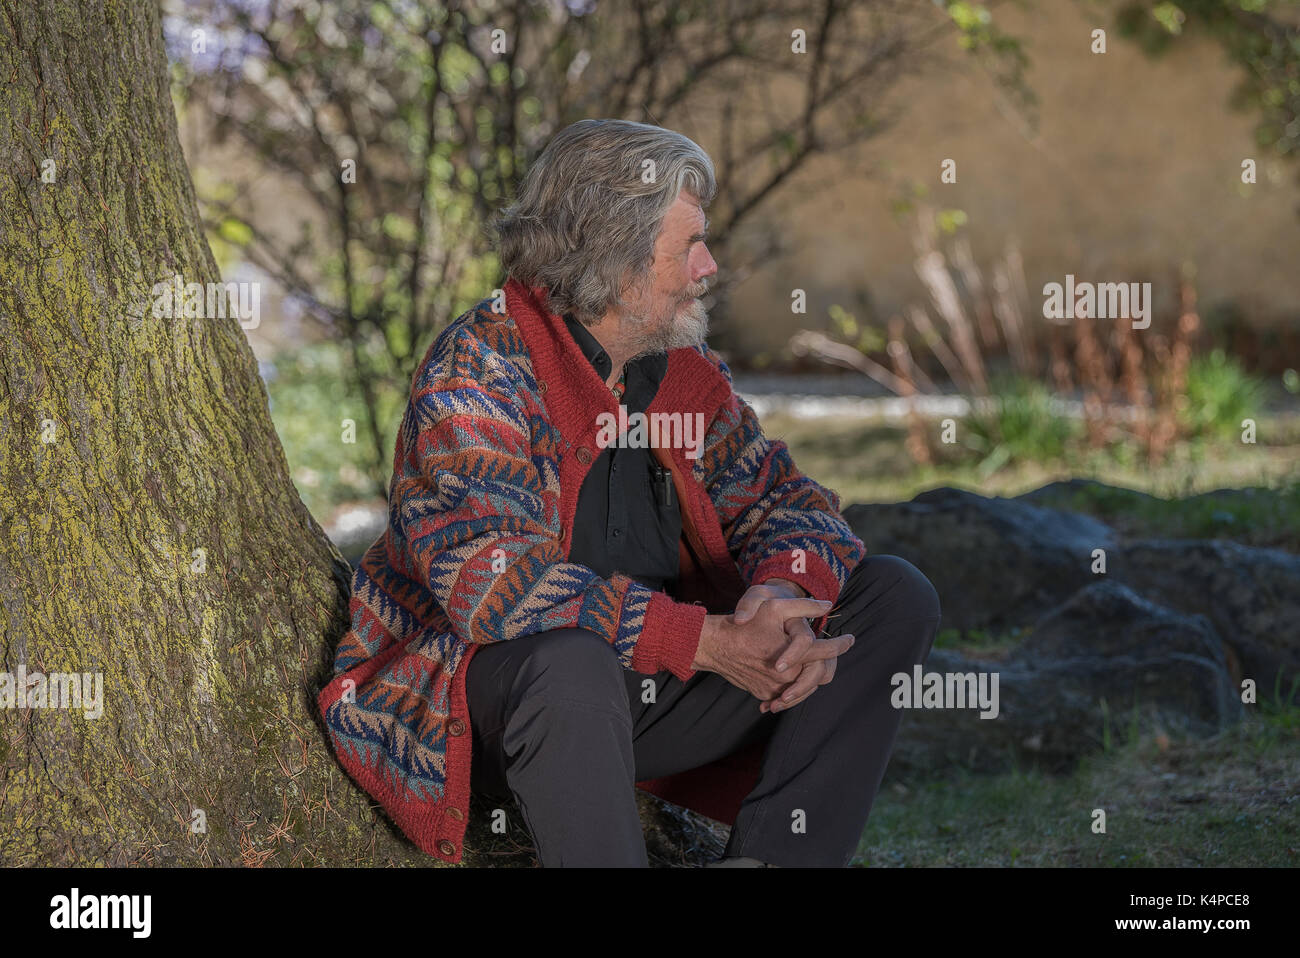 Alpinist Reinhold Messner under his favorite tree at Juval Castle in South Tyrol, Italy - Stock Image